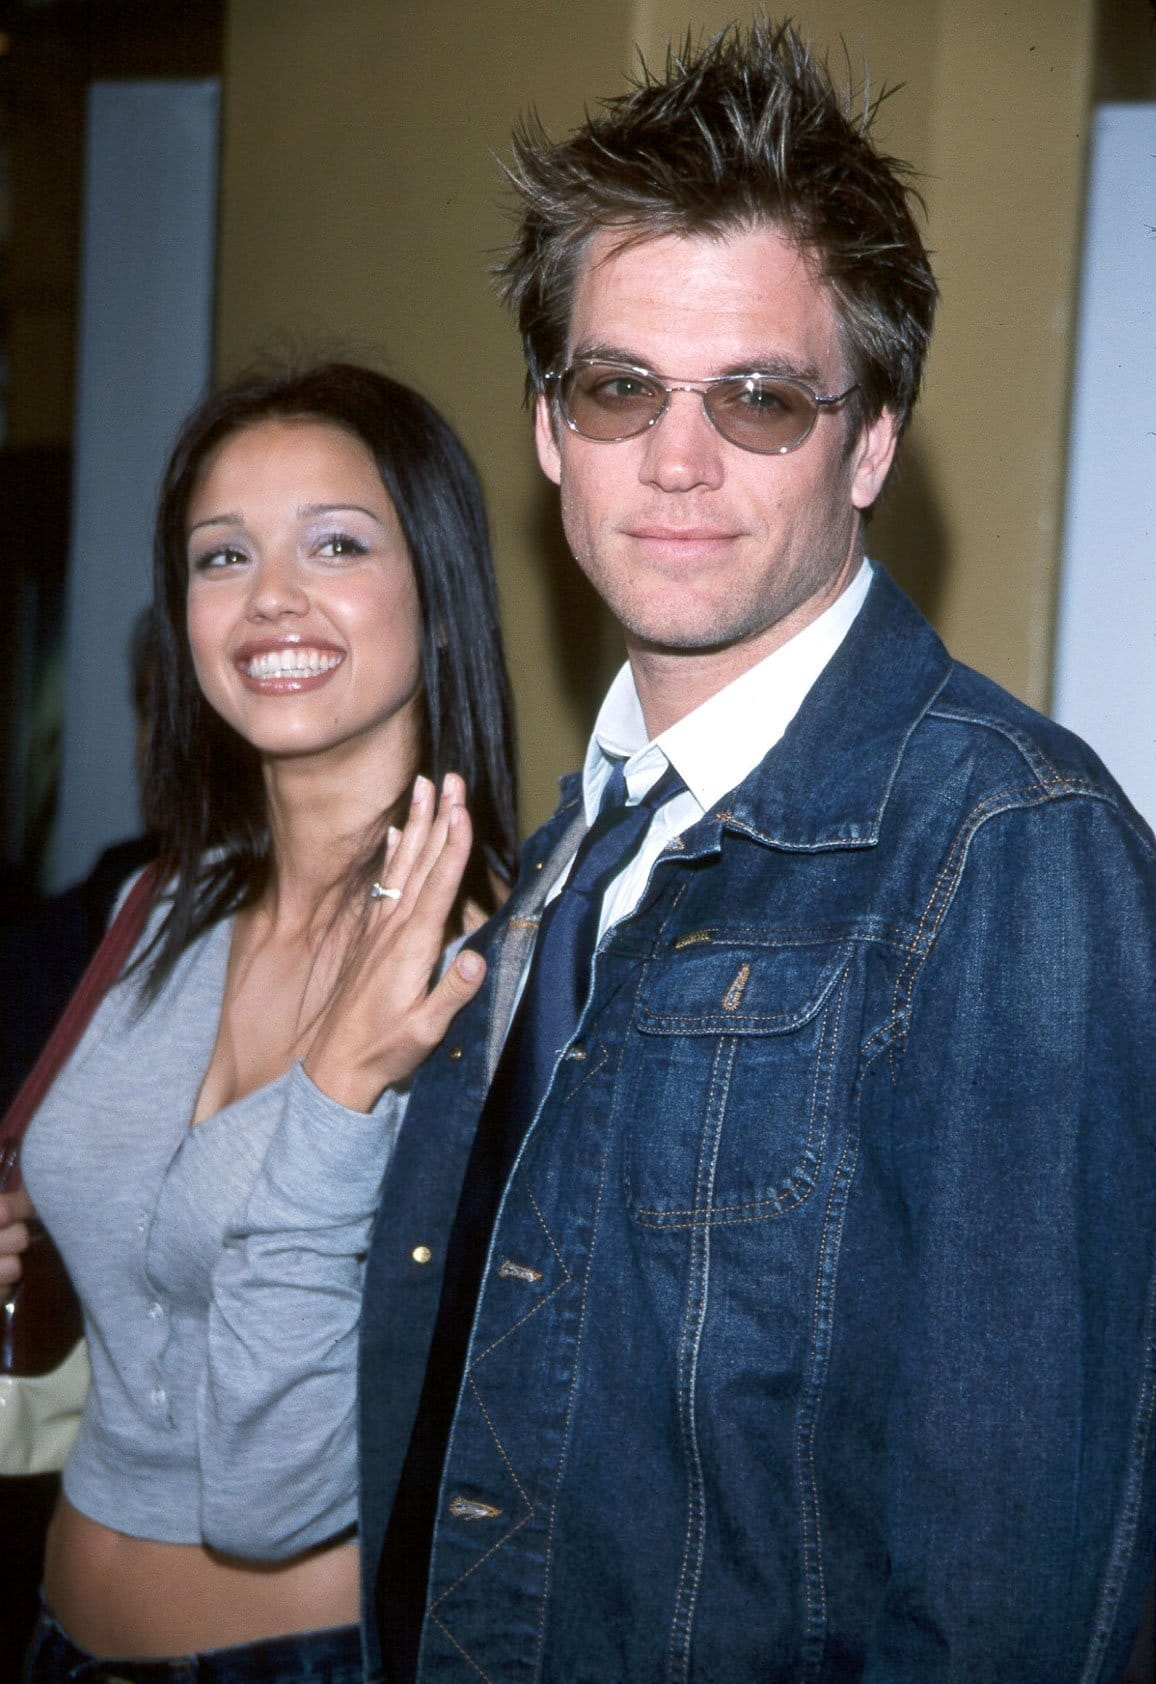 Jessica Alba shows off her engagement ring from Michael Weatherly at the Lara Croft: Tomb Raider premiere